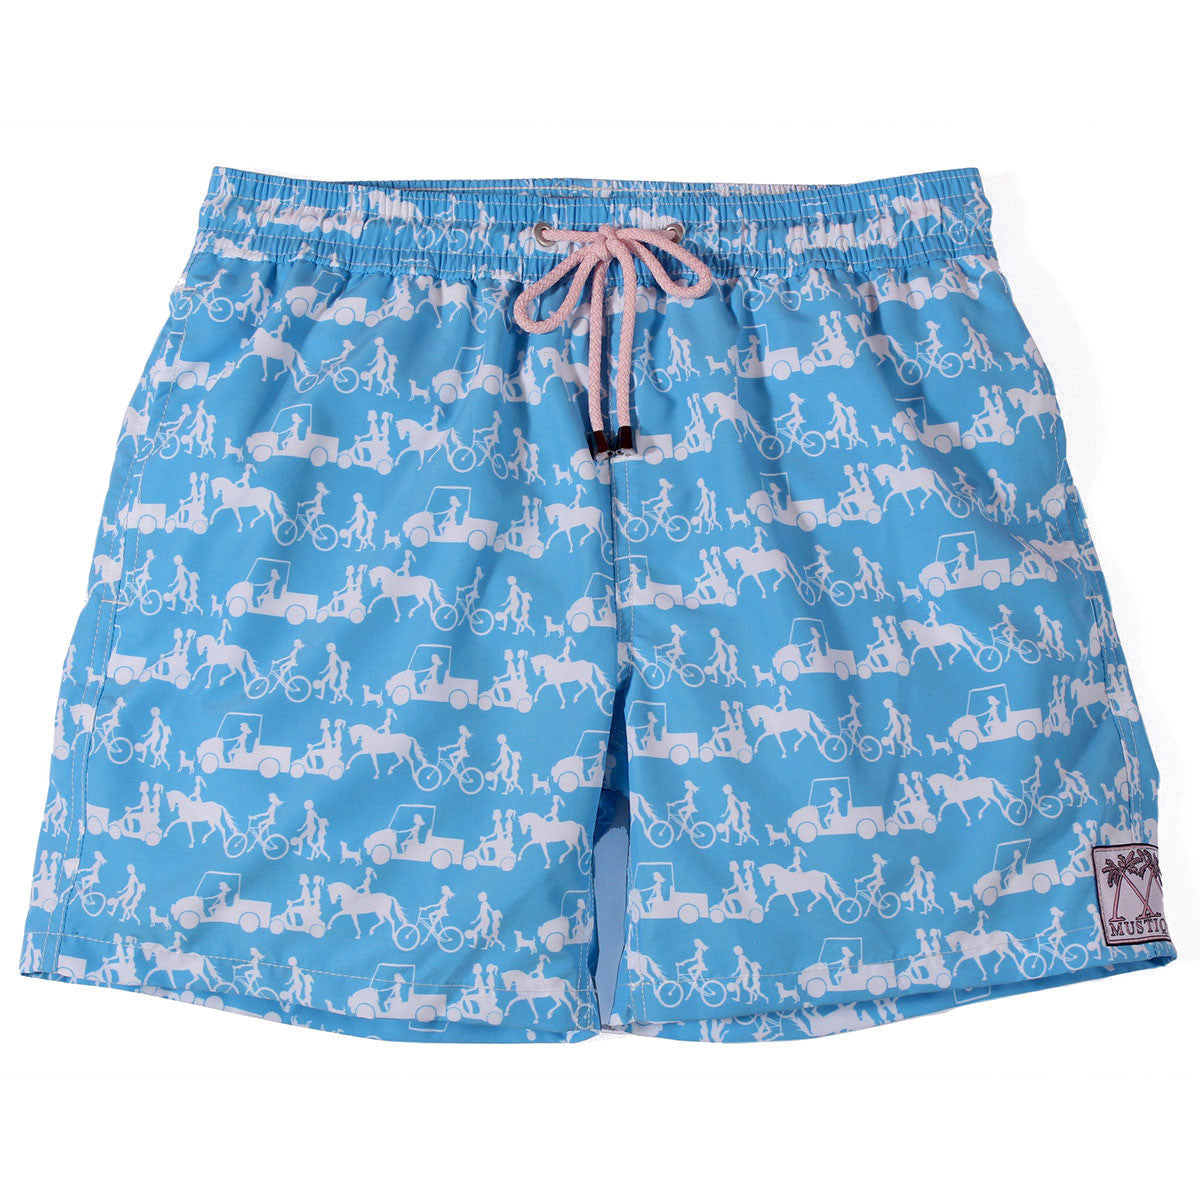 Mens Trunks Going to the Beach (Blue/White)